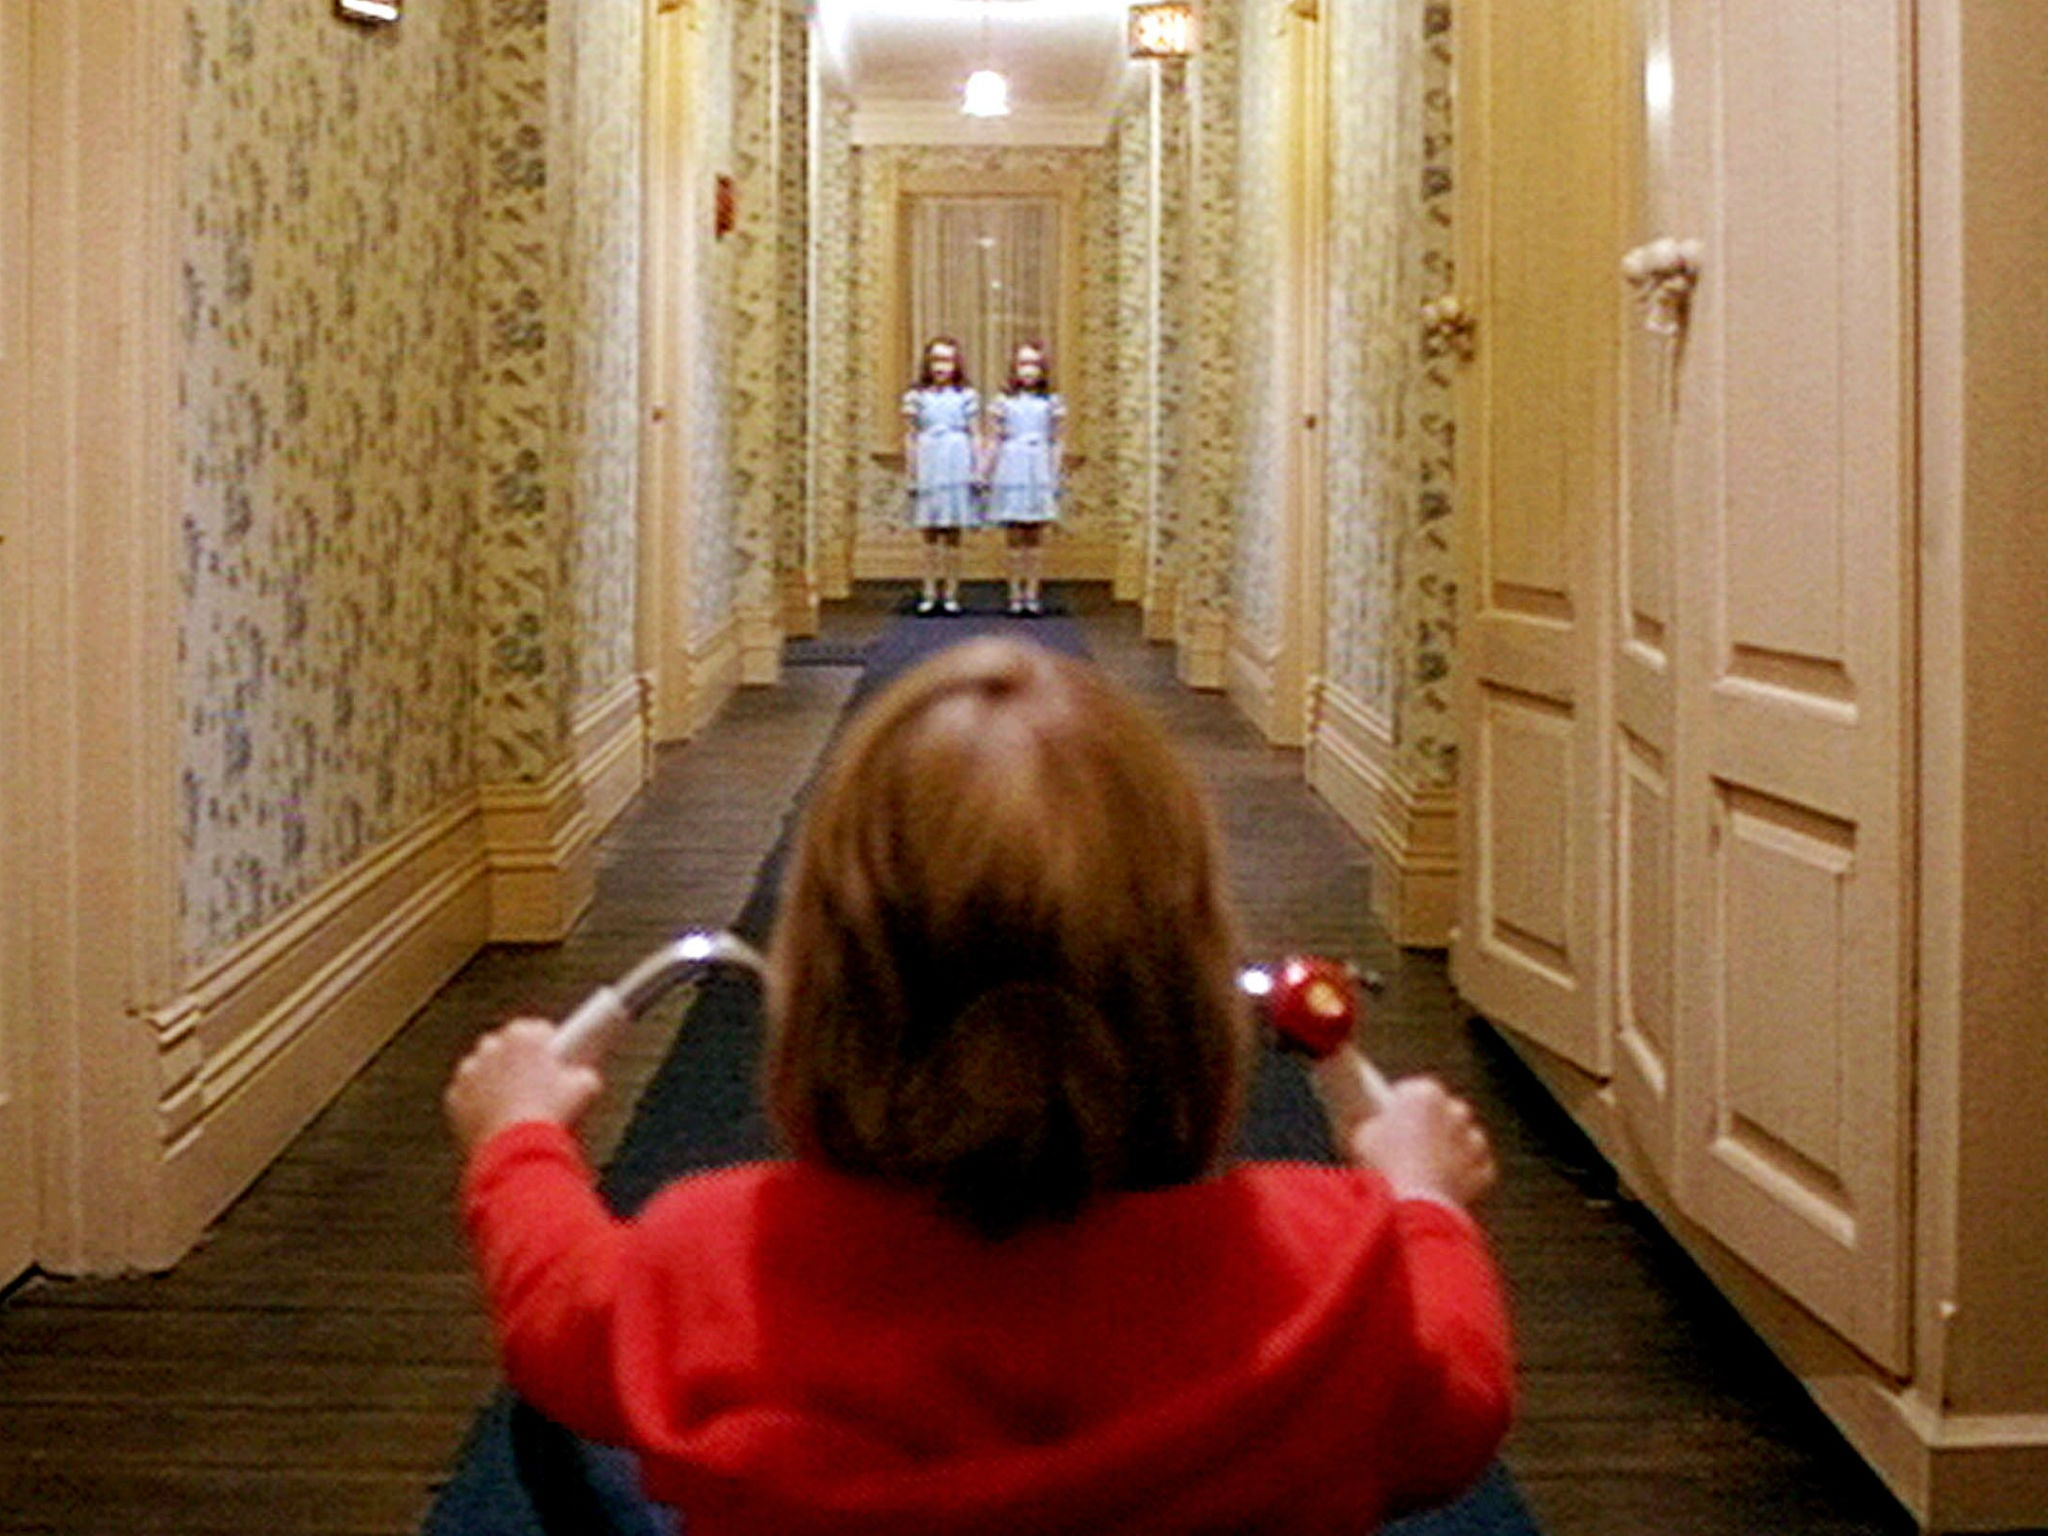 The Shining 7 Things You Never Knew About The Classic Horror Film According To The Grady Twins The Independent